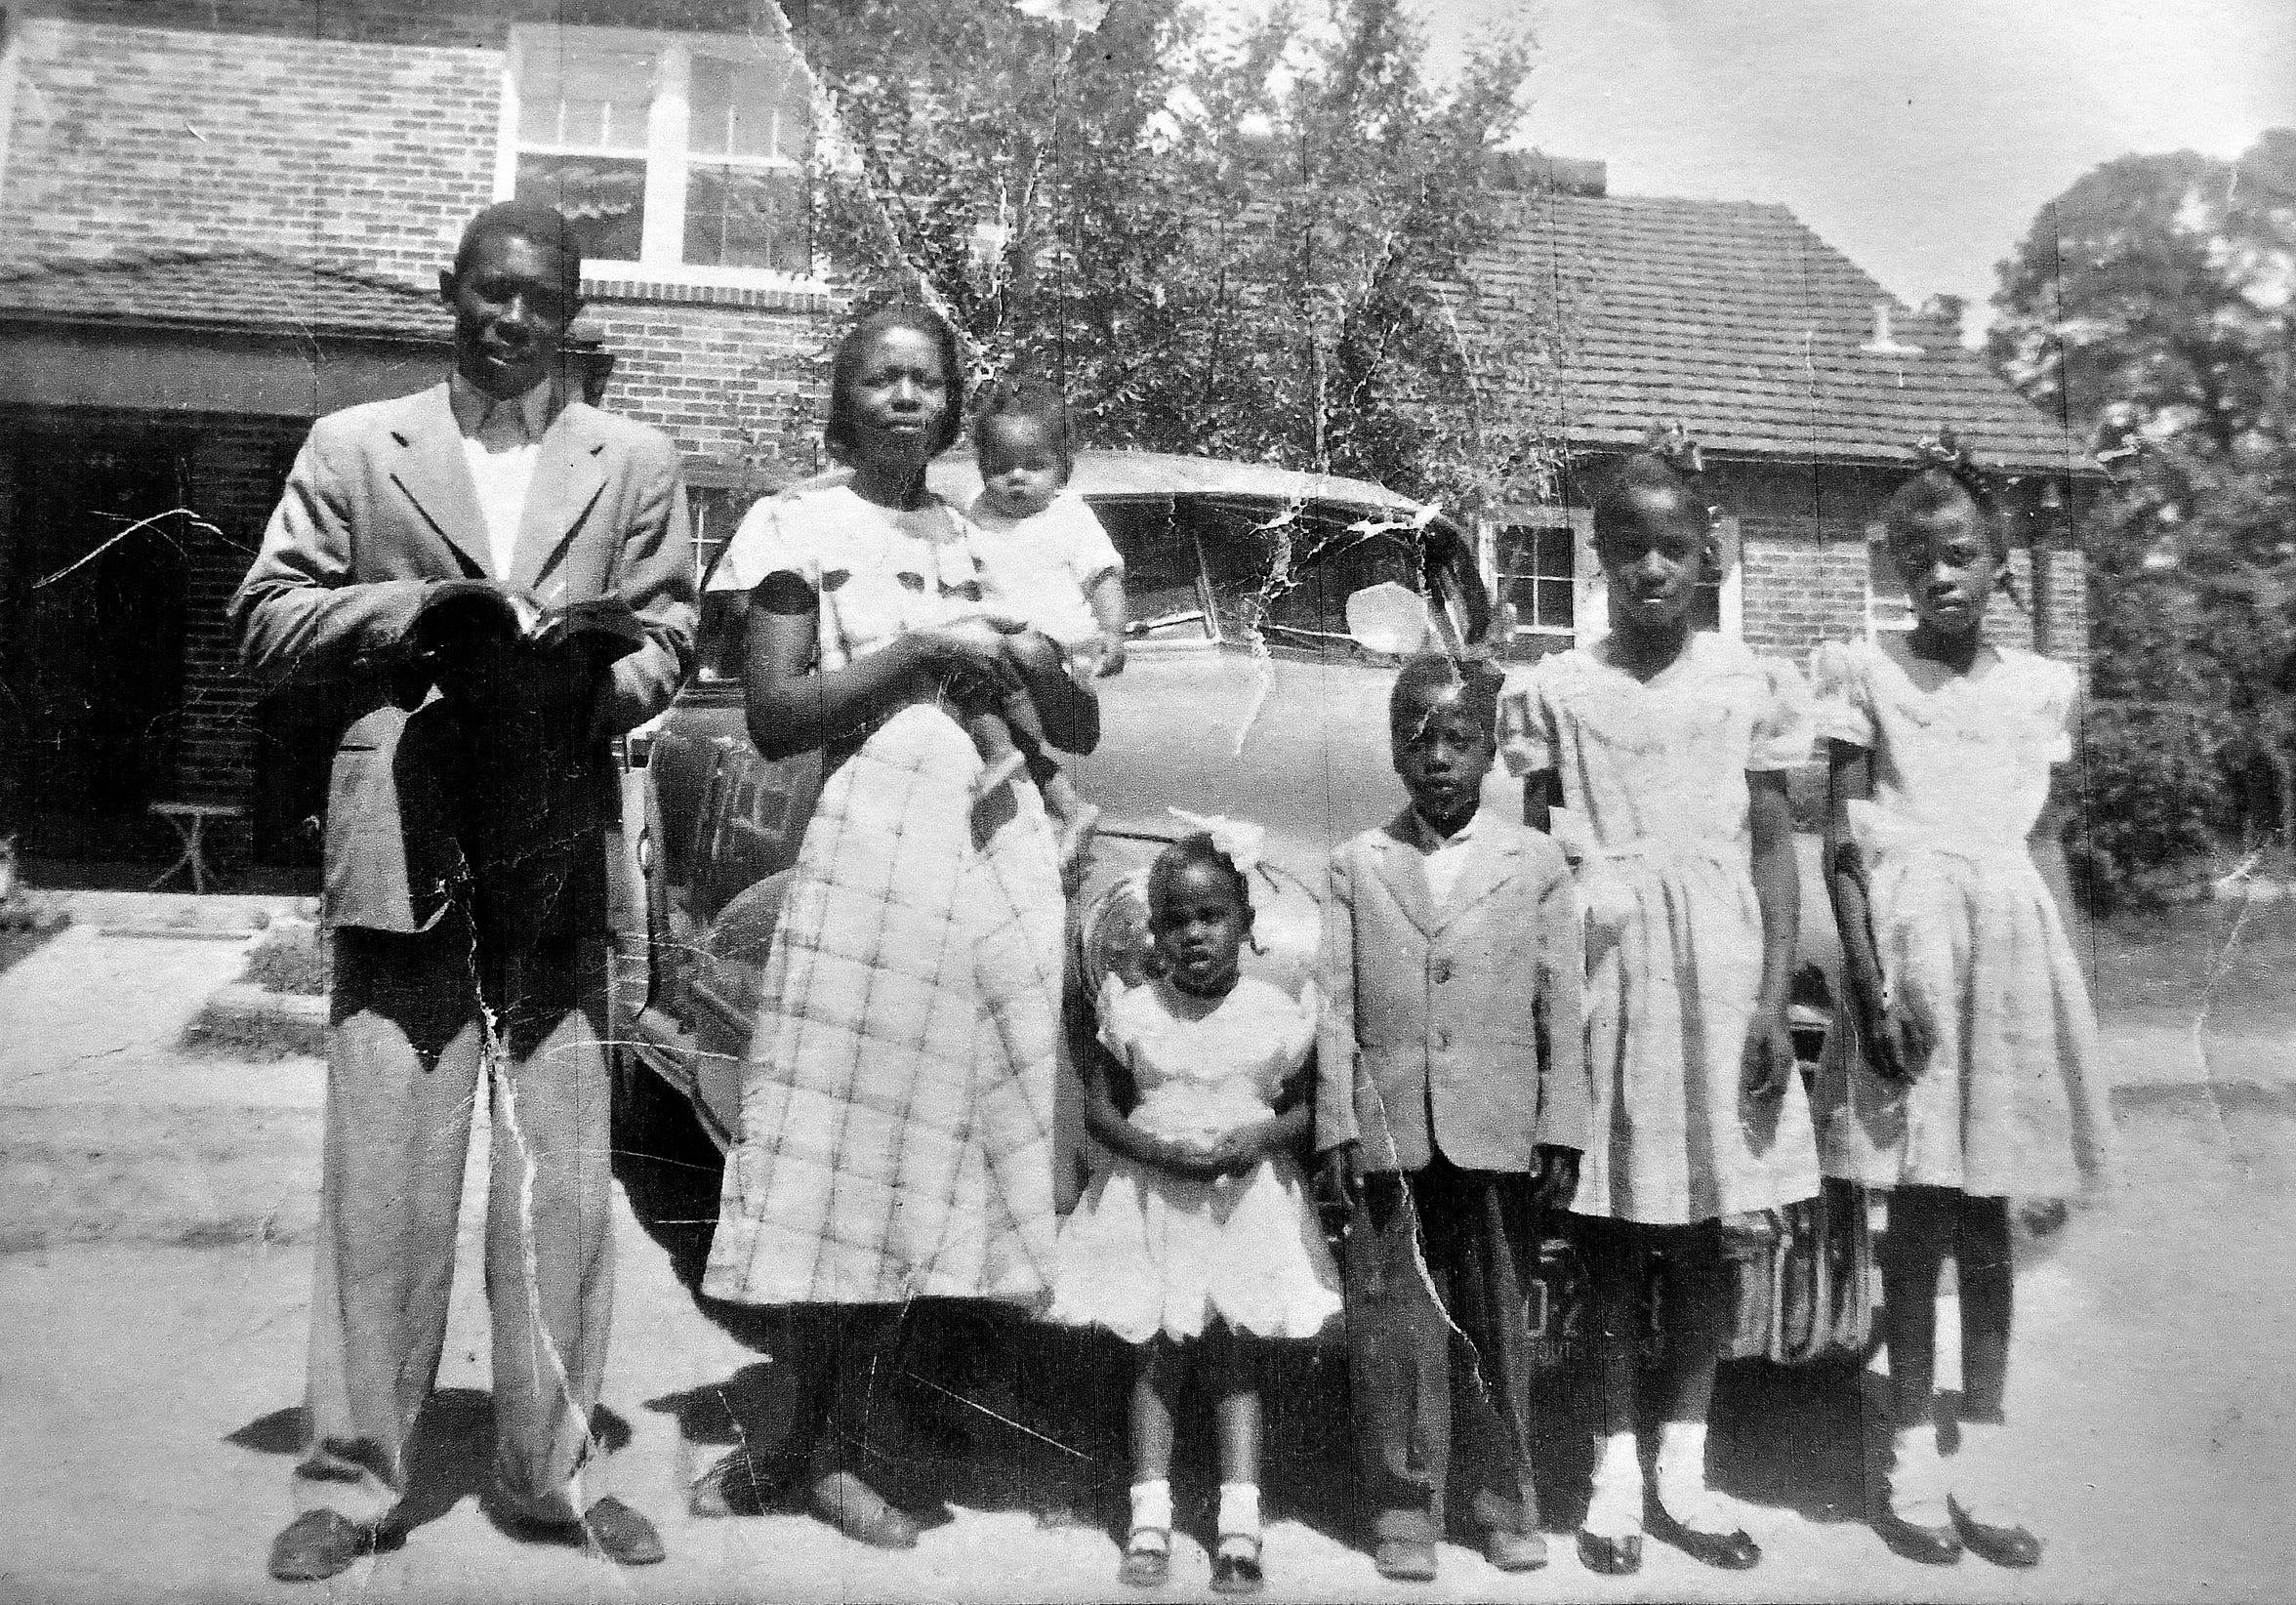 A 1953 photograph of Lillie Belle Allen's family, from left to right, father Rev. James, mother Beatrice, holding Wayne, 1, sister Secina, 4, brother Henry, 6, Lillie Belle, 12, and Jennie, 10. Another sister, Hattie, not pictured because she went to the bathroom. Lillie Belle, at 27, would be shot and killed during the York Riots on July 21, 1969 while visiting family in York. Dawn J. Sagert photo